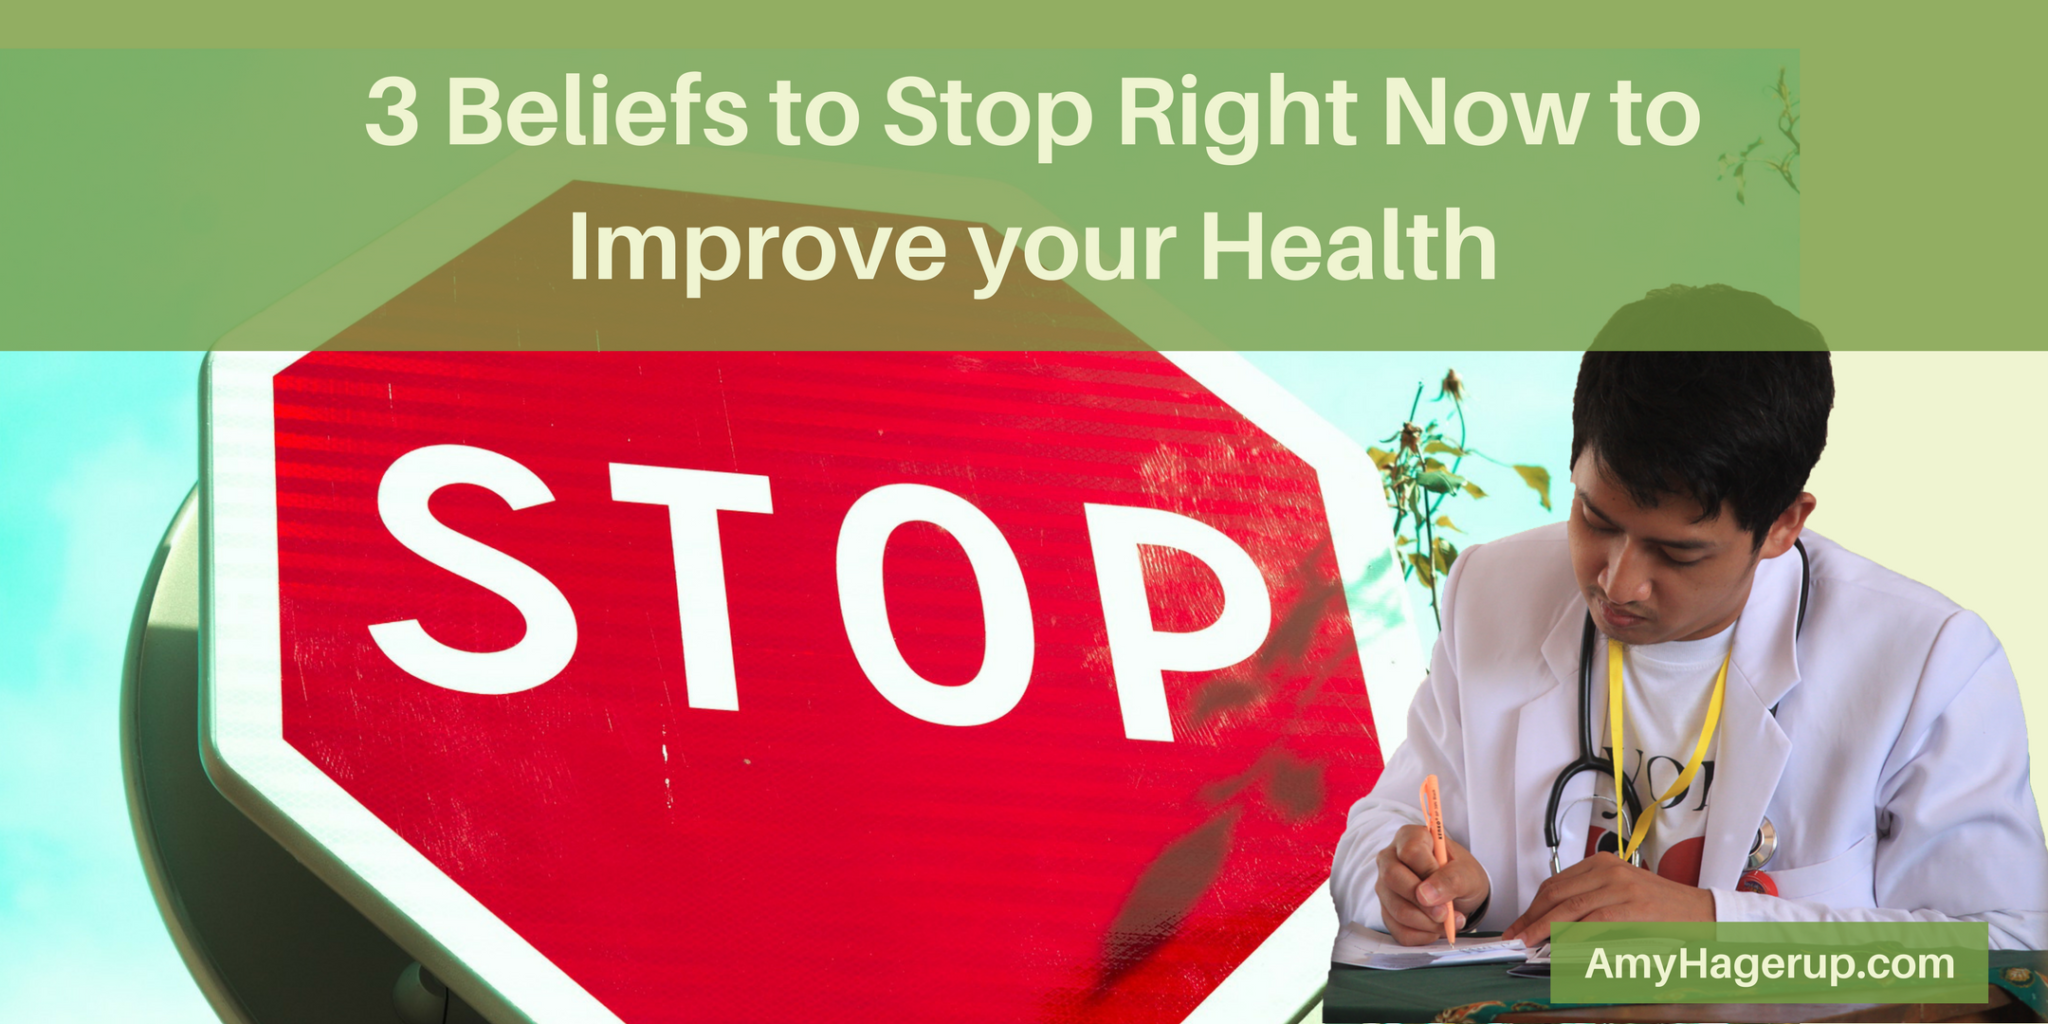 Stop believing these 3 things to improve your health.